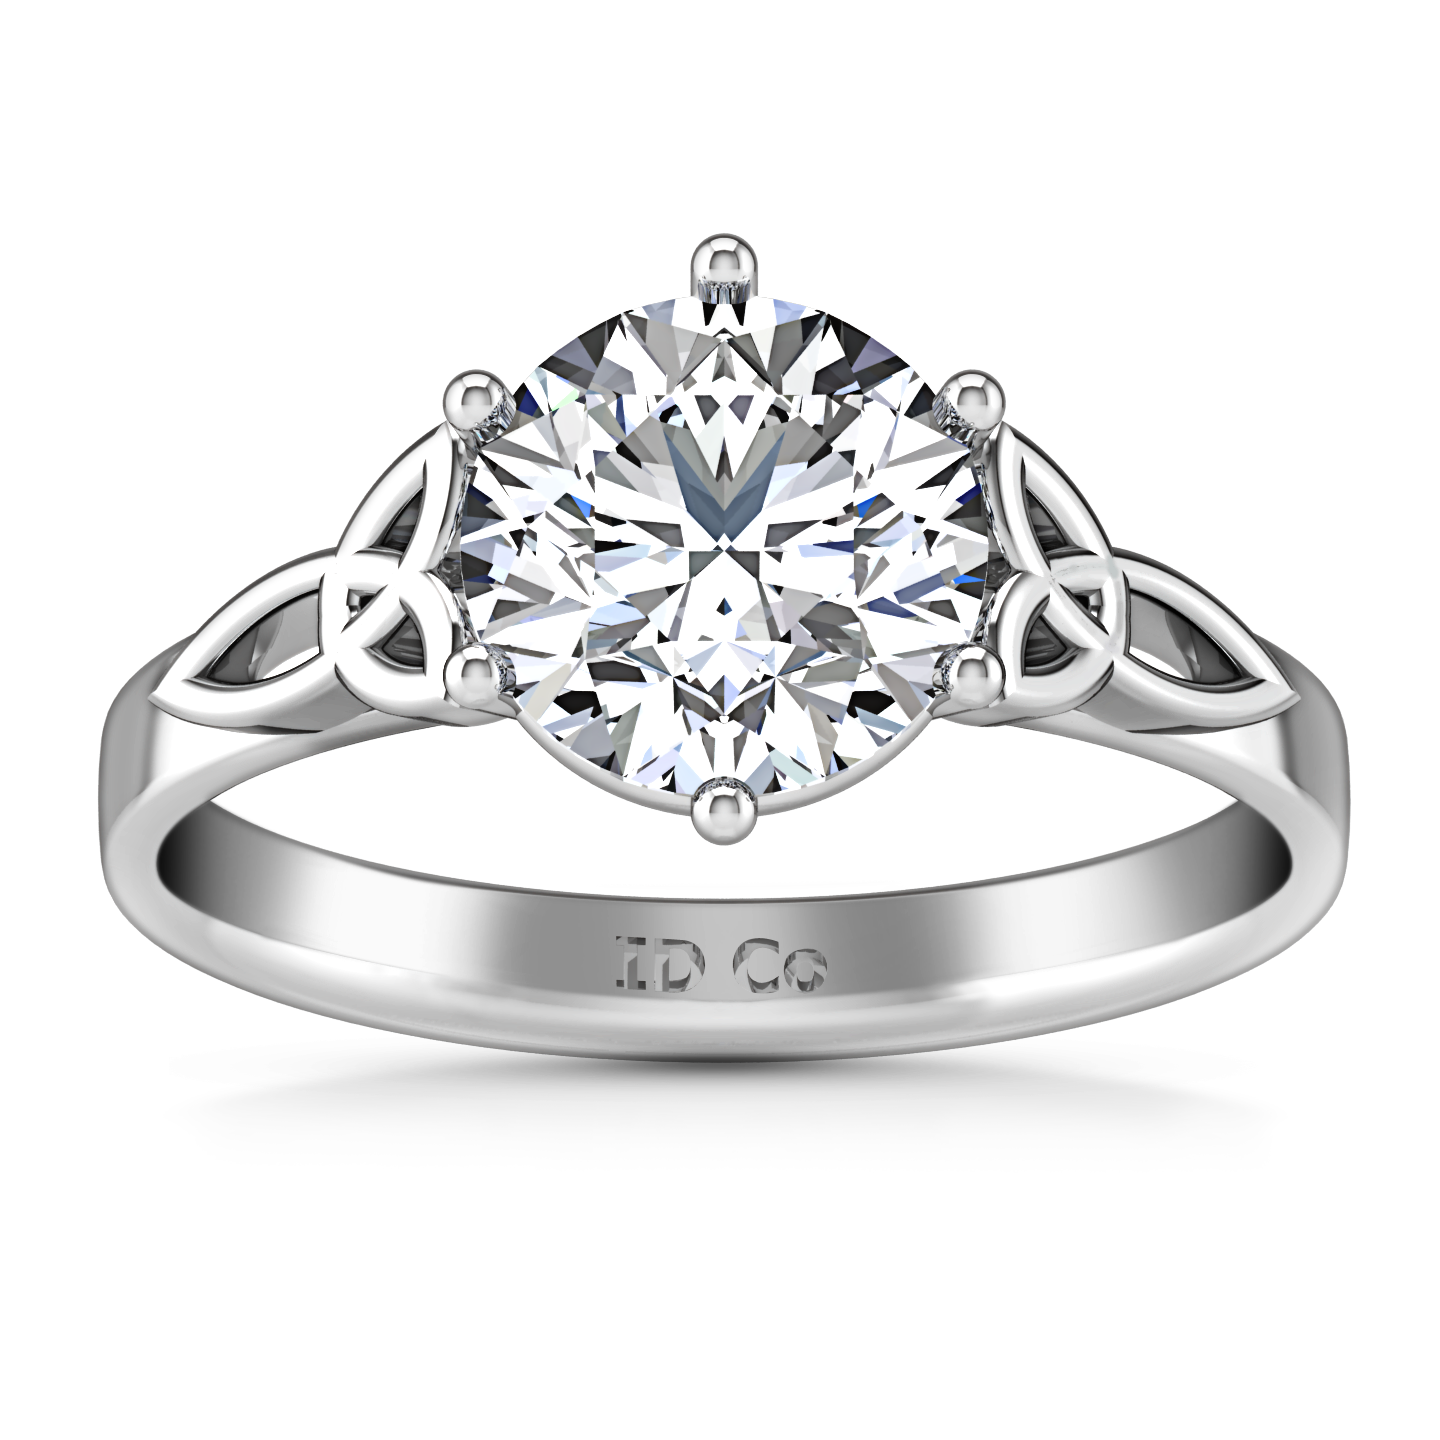 wedding diamond ring engagement design knot edgeless joseph bellevue own online pav and seattle pin modern jewelry your